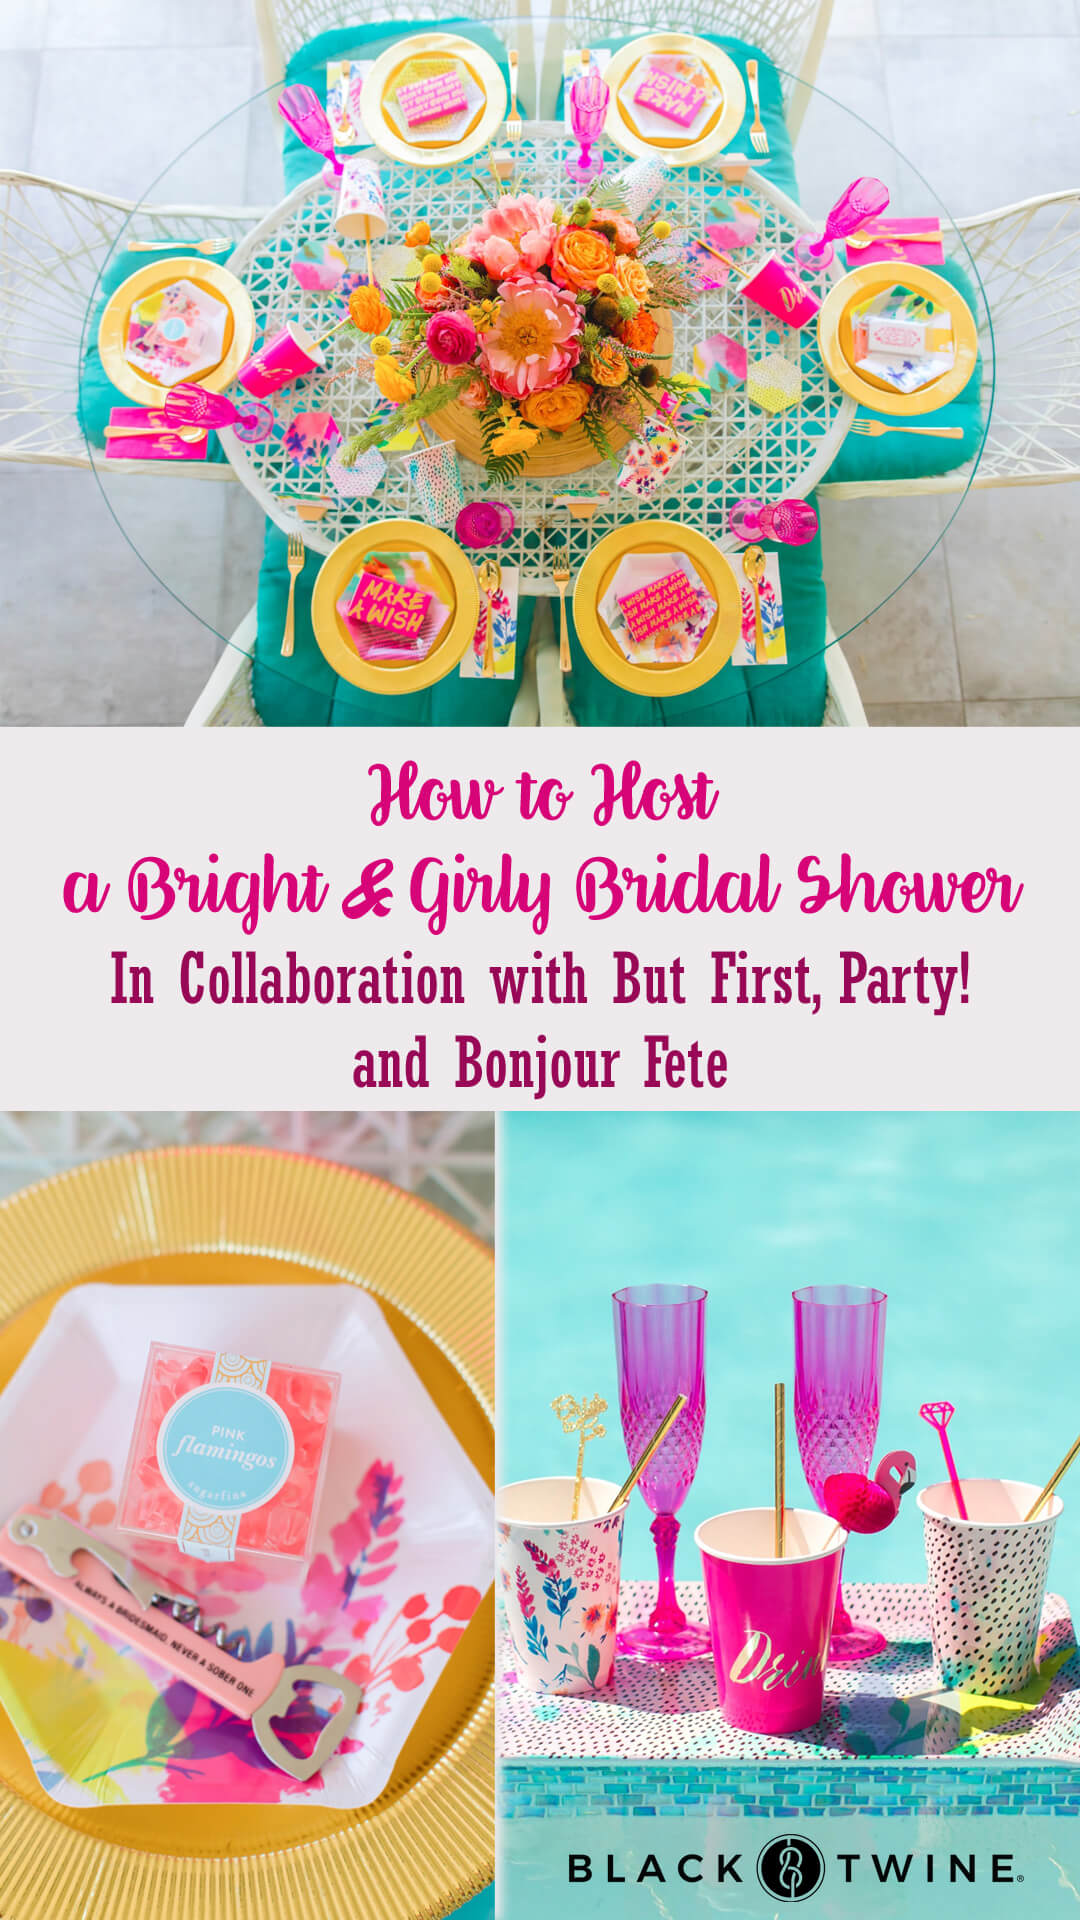 Photo Collage of Tablescape, Place Setting and Tray of Cups and Flutes from Bachelorette Brunch by But First Party and Bonjour Fete | Black Twine